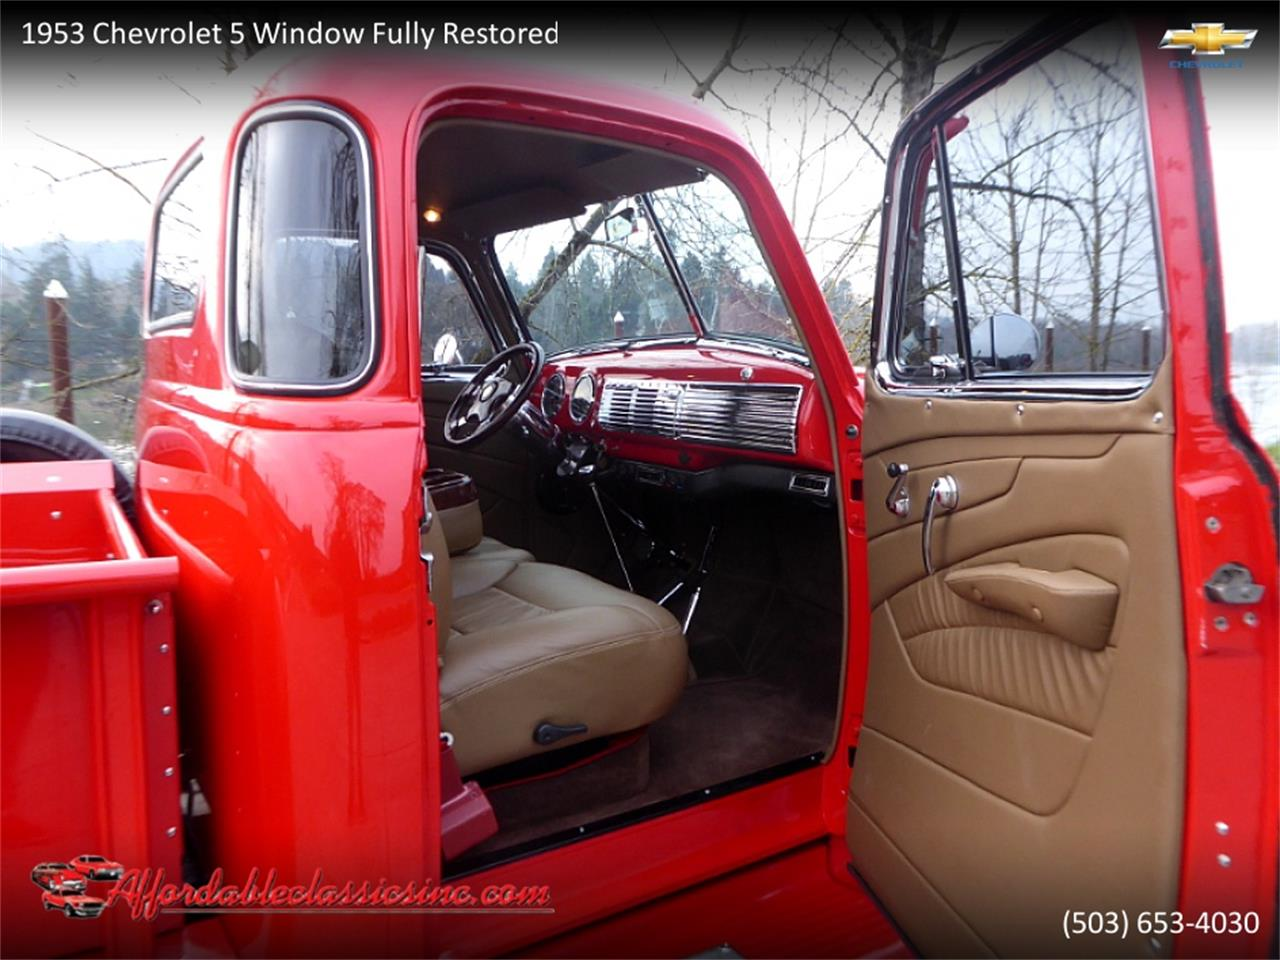 1953 Chevrolet 5-Window Coupe (CC-1358027) for sale in Gladstone, Oregon